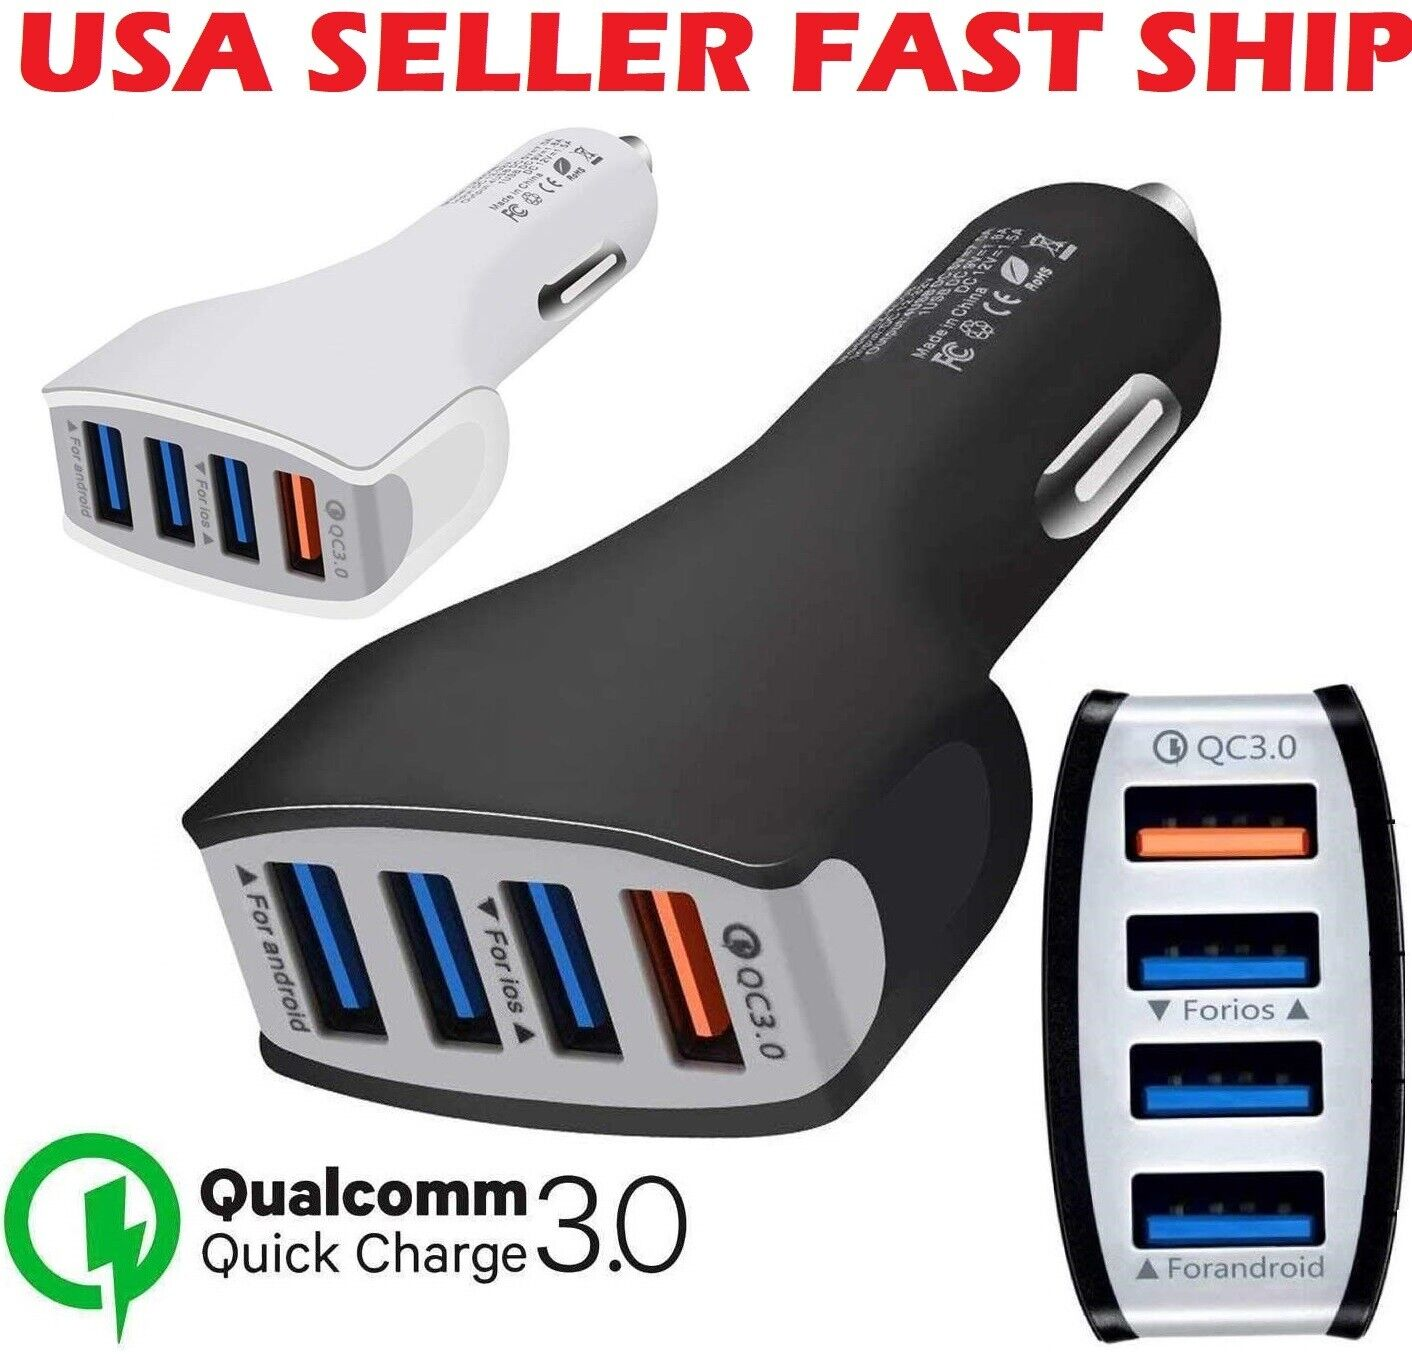 4-Port USB Fast Charging Car Charger Adapter Quick Charger For Cell Phone iPhone Cell Phone Accessories